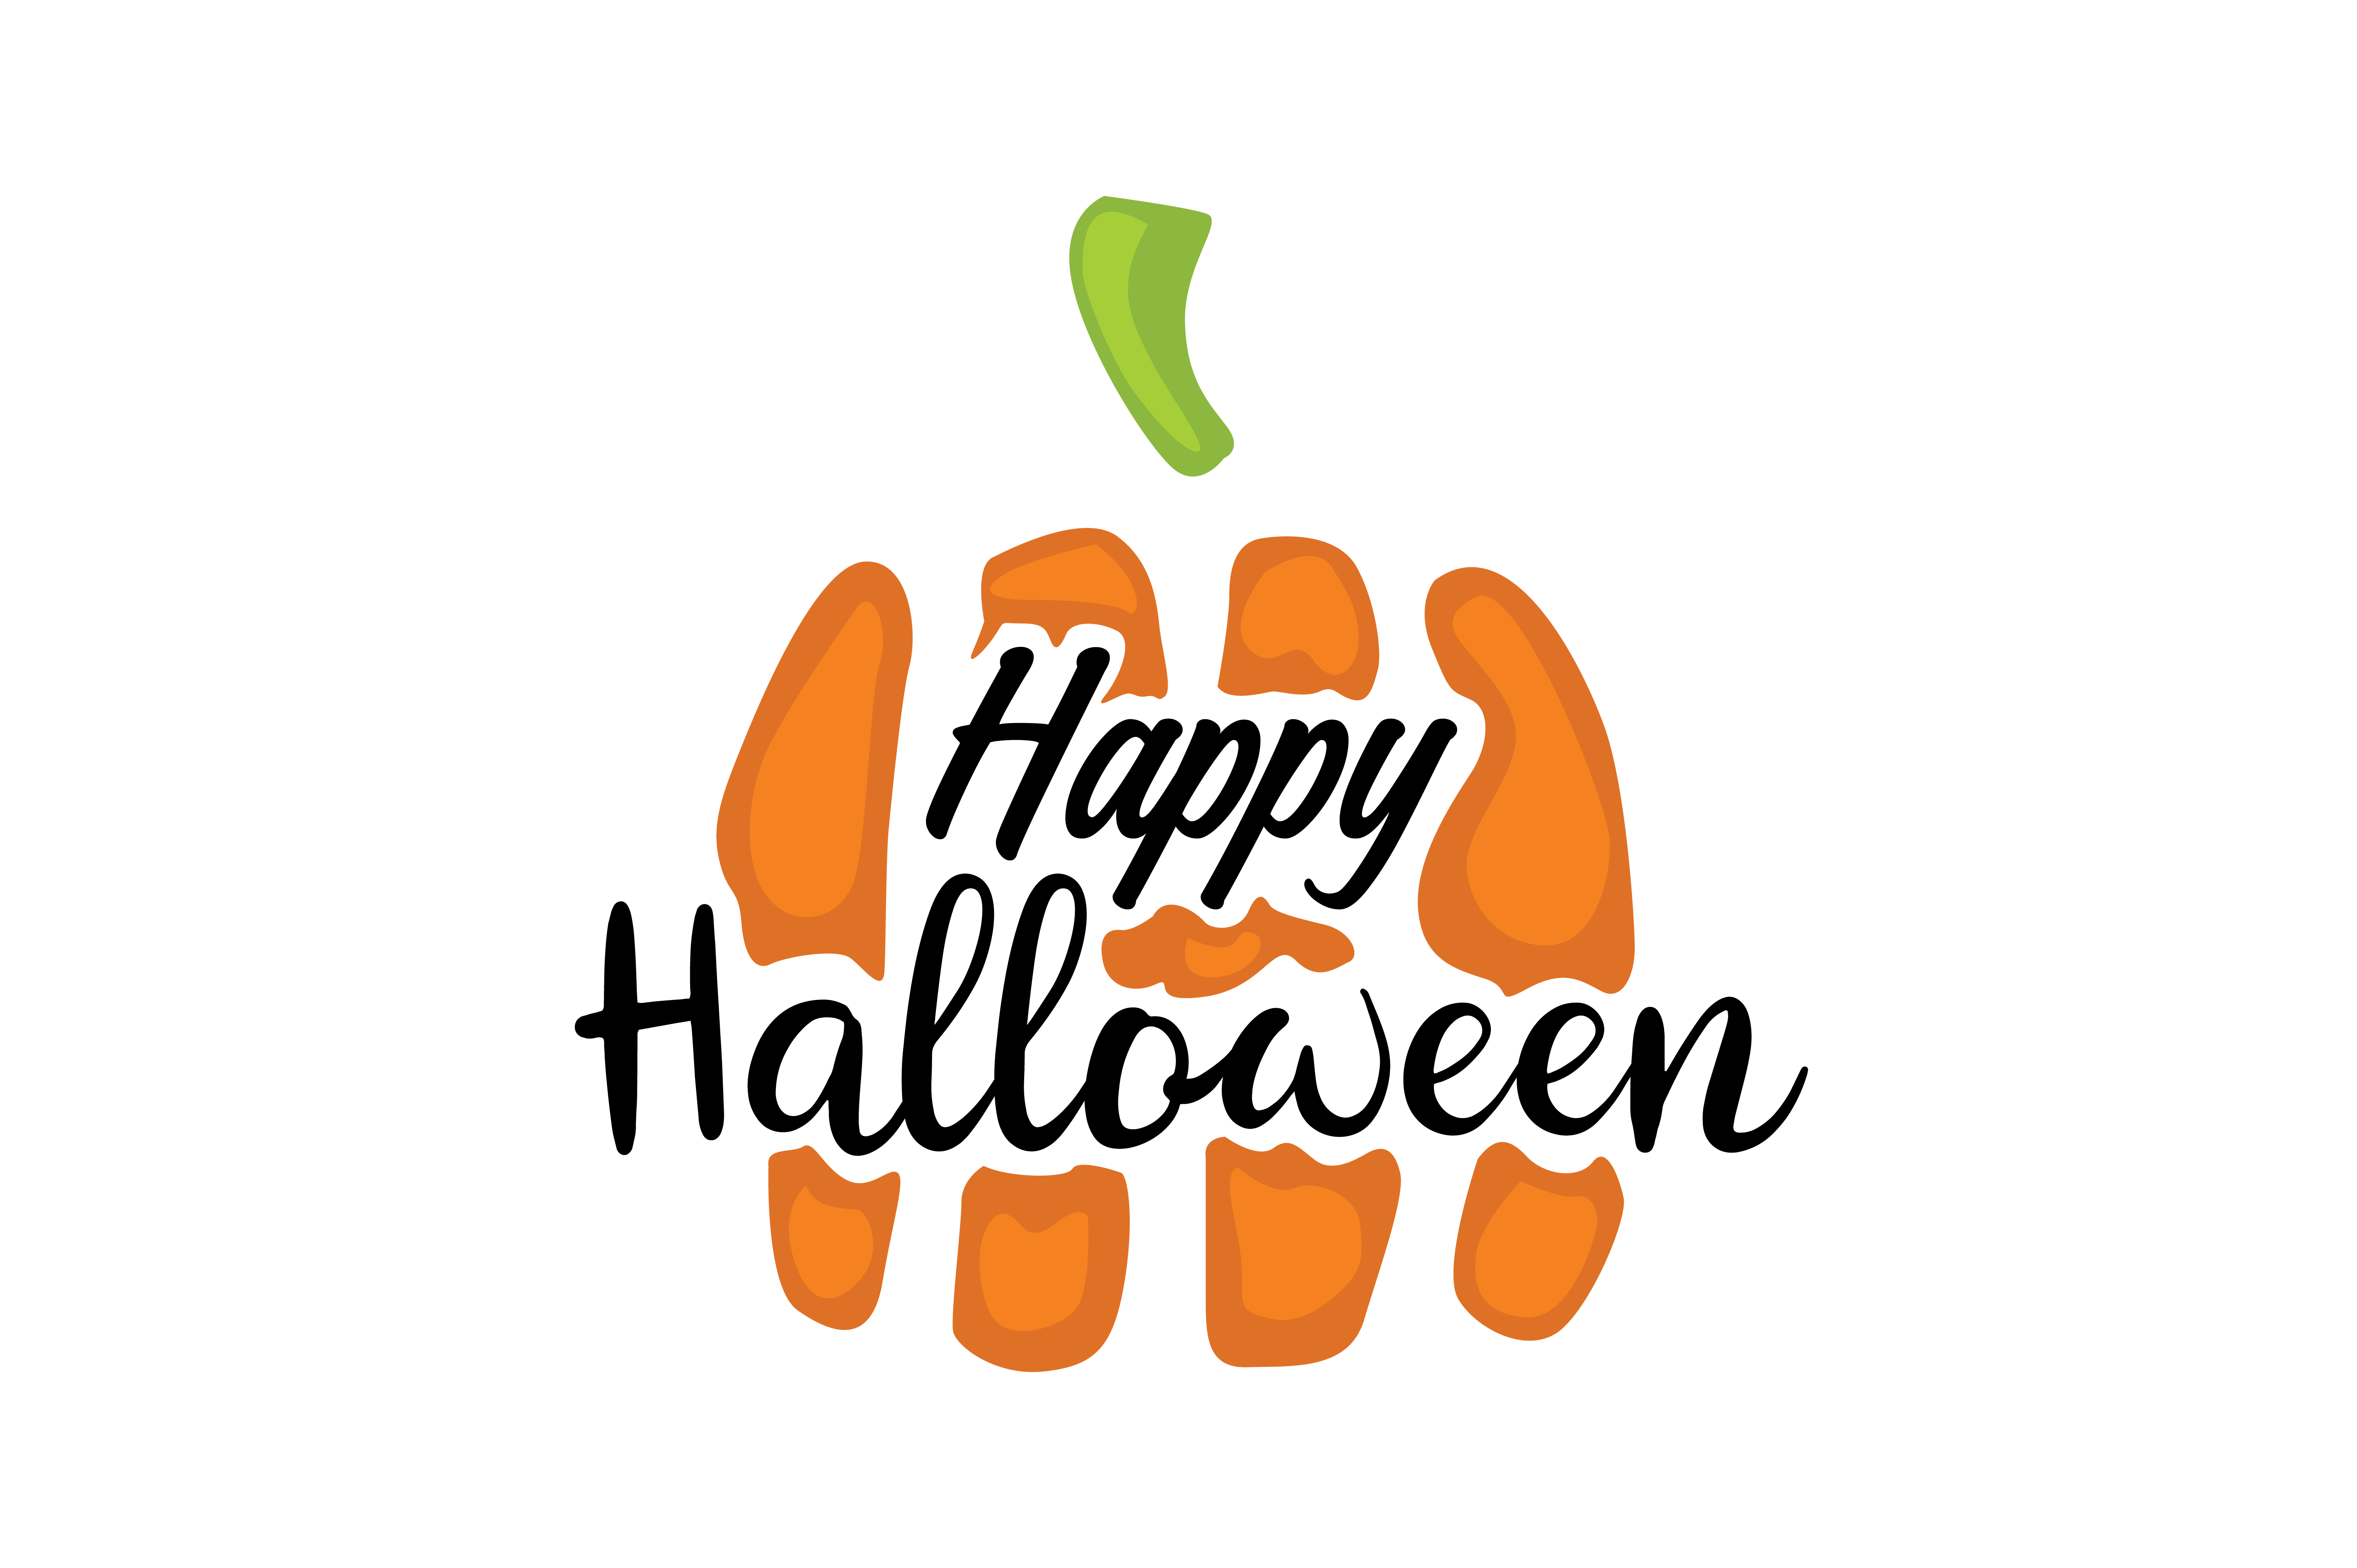 Download Free Happy Halloween Graphic By Thelucky Creative Fabrica for Cricut Explore, Silhouette and other cutting machines.